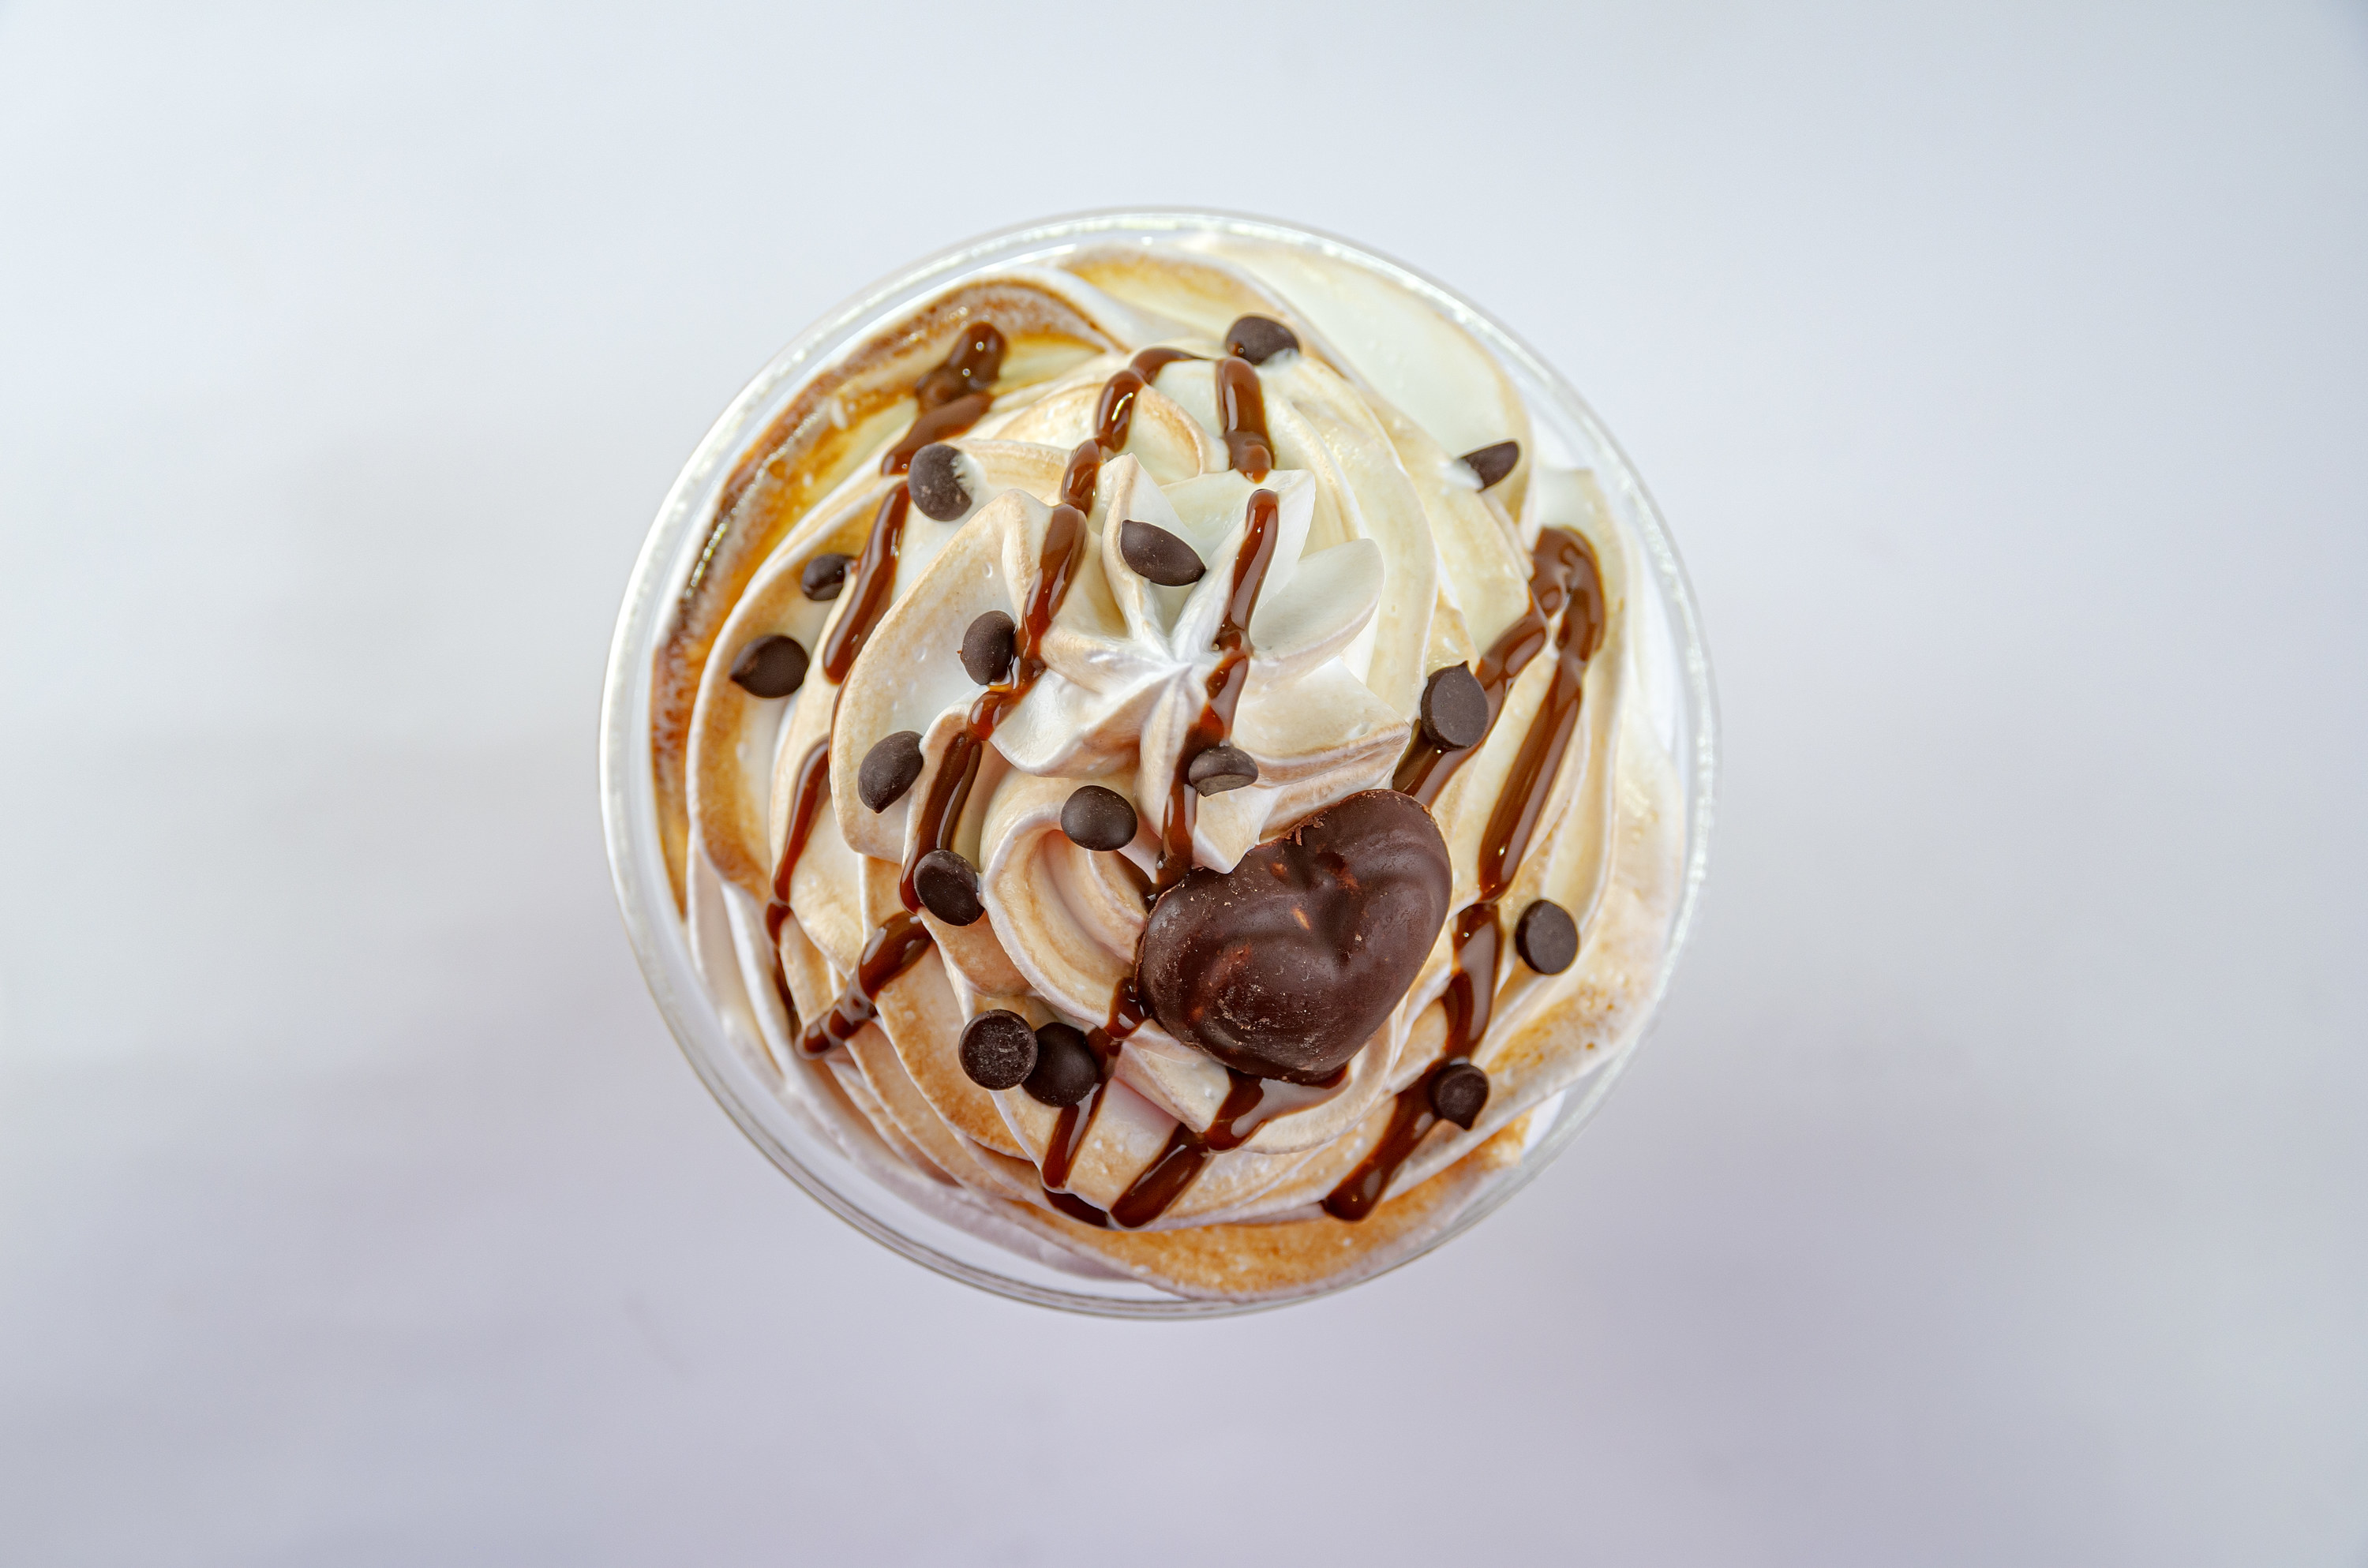 Aerial shot of a Frappucino drizzled with dark chocolate chips, chocolate syrup, and a heart-shaped chocolate piece.